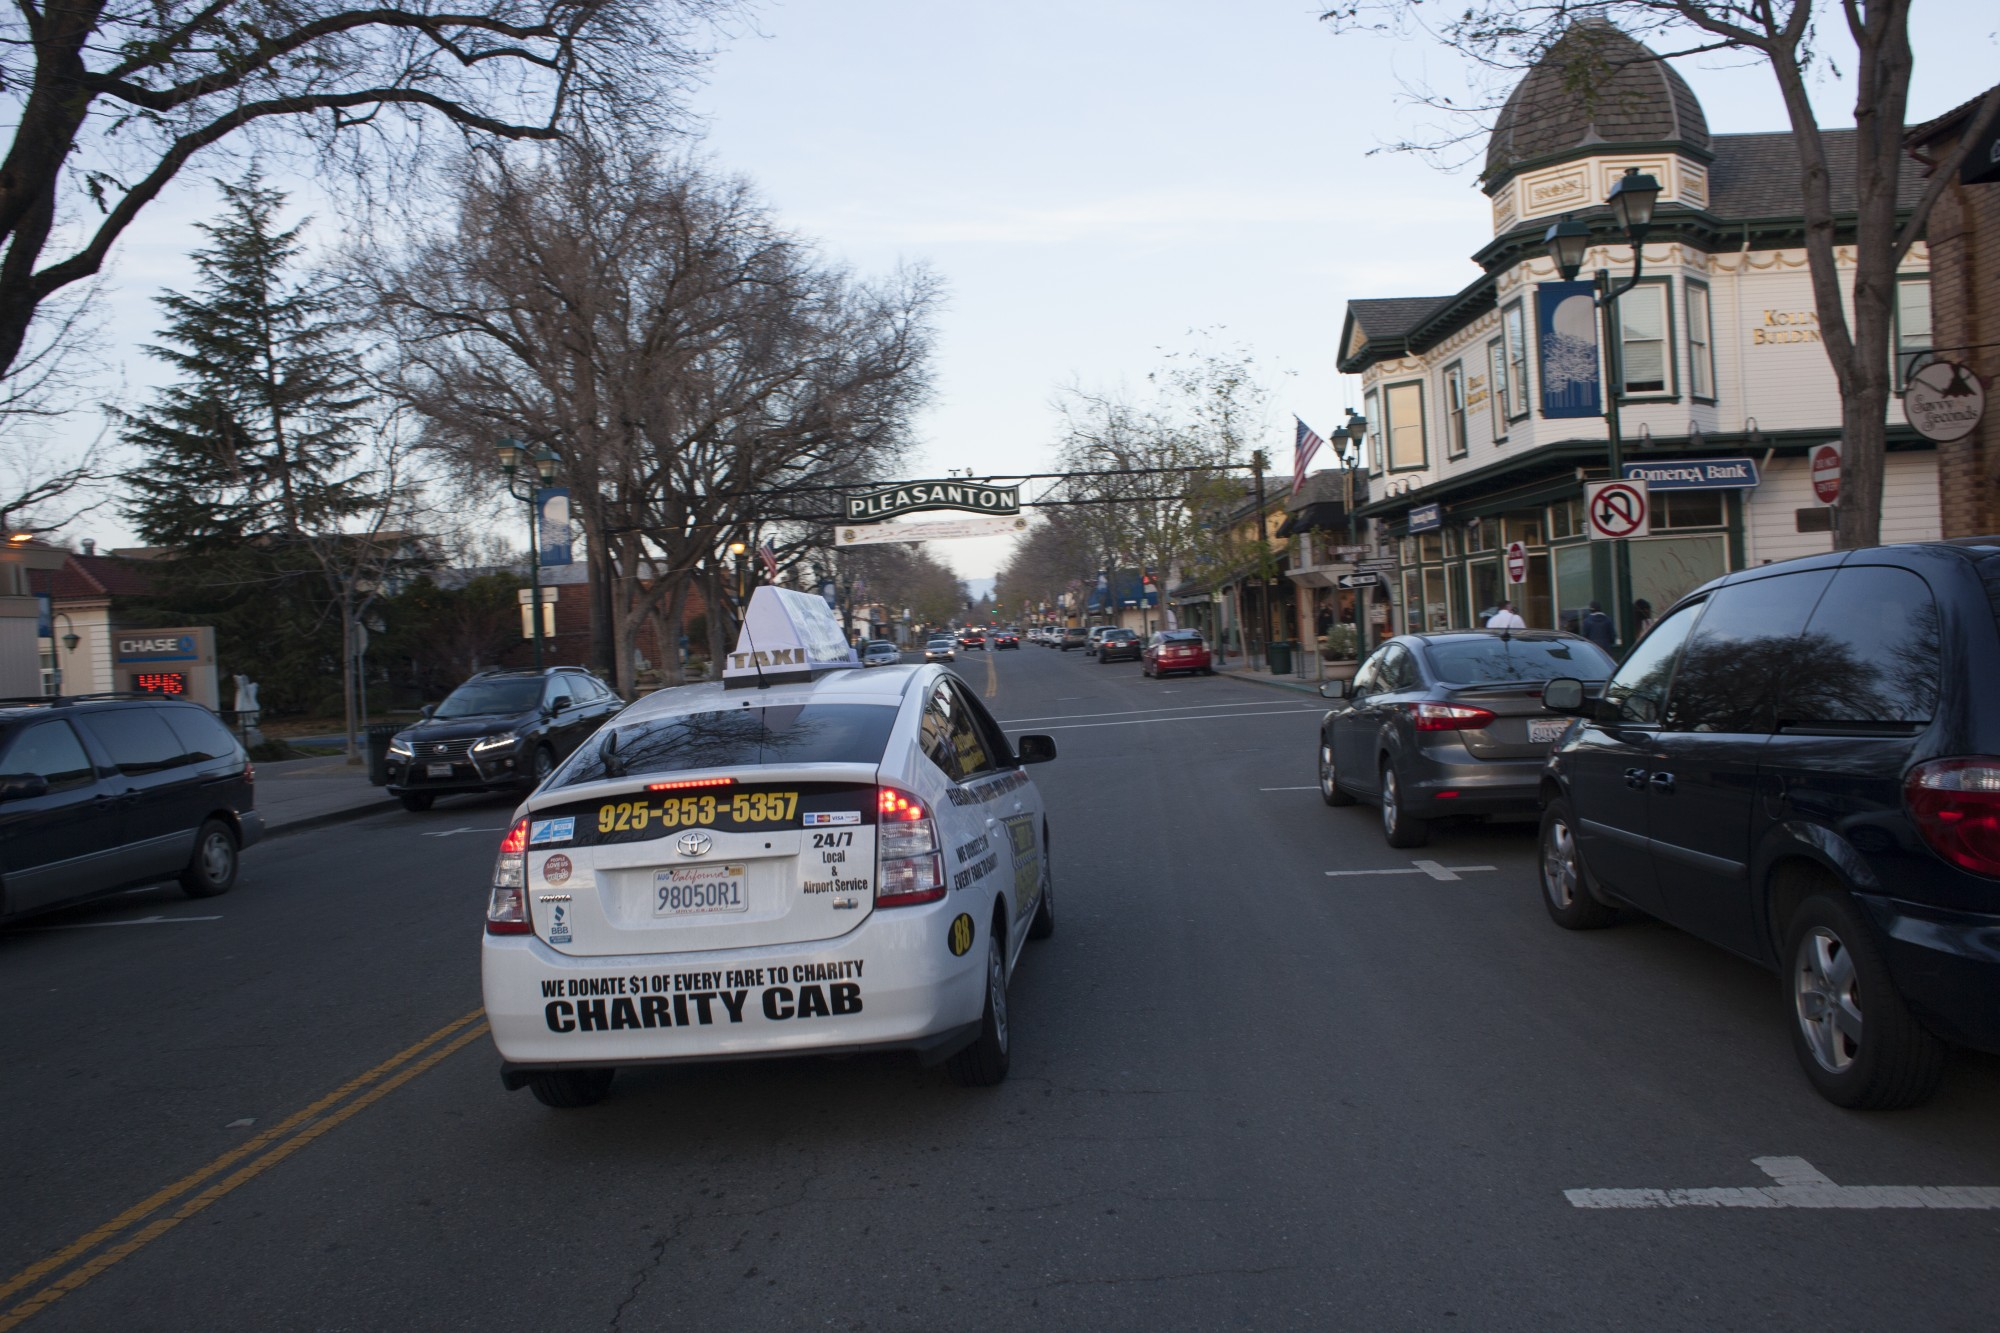 Charity Cab's taxi in Pleasanton on Main Street